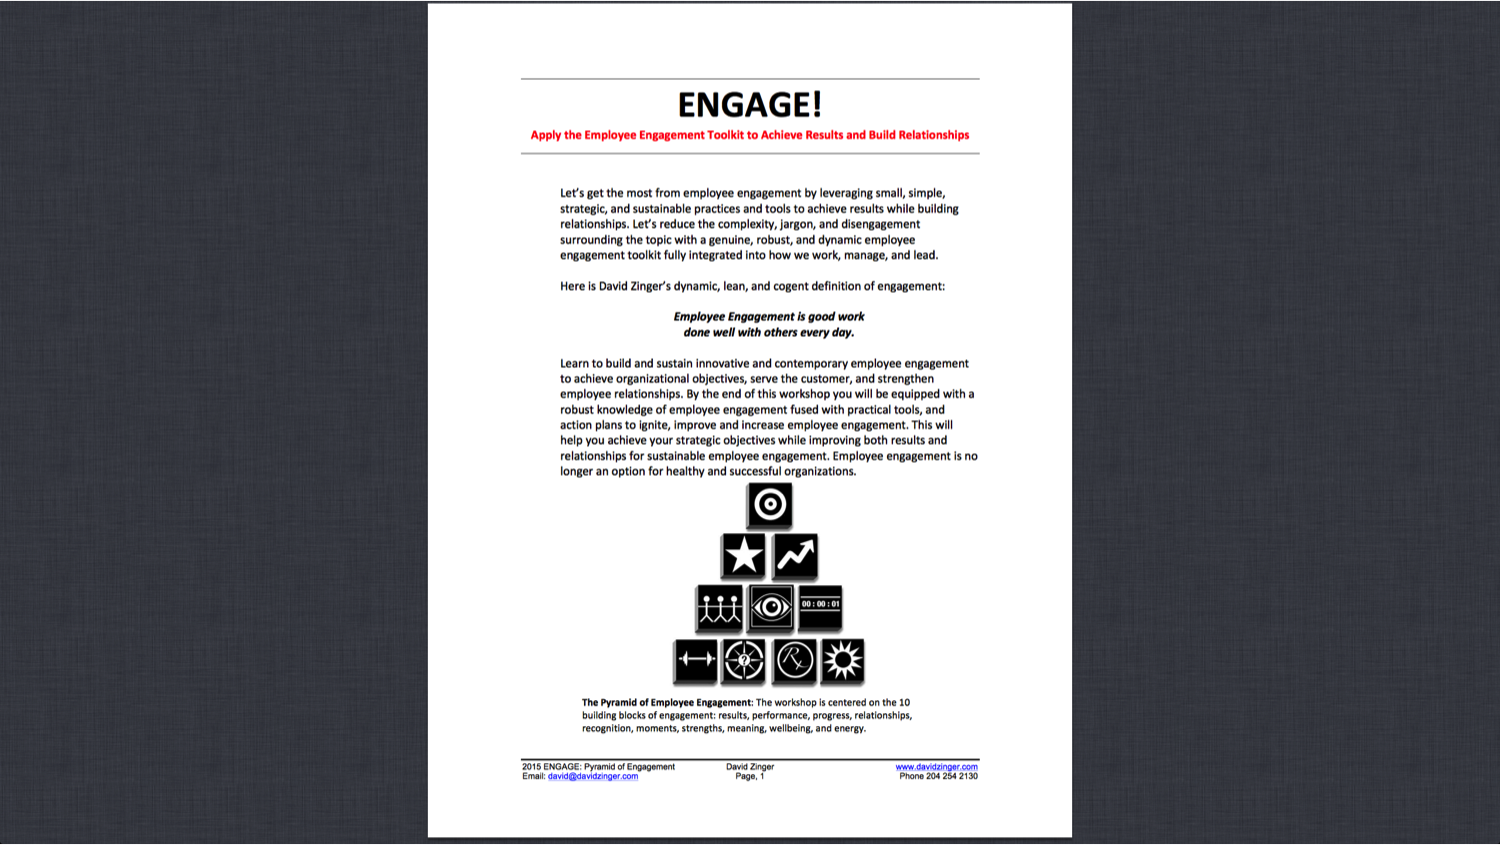 ENGAGE Course Description